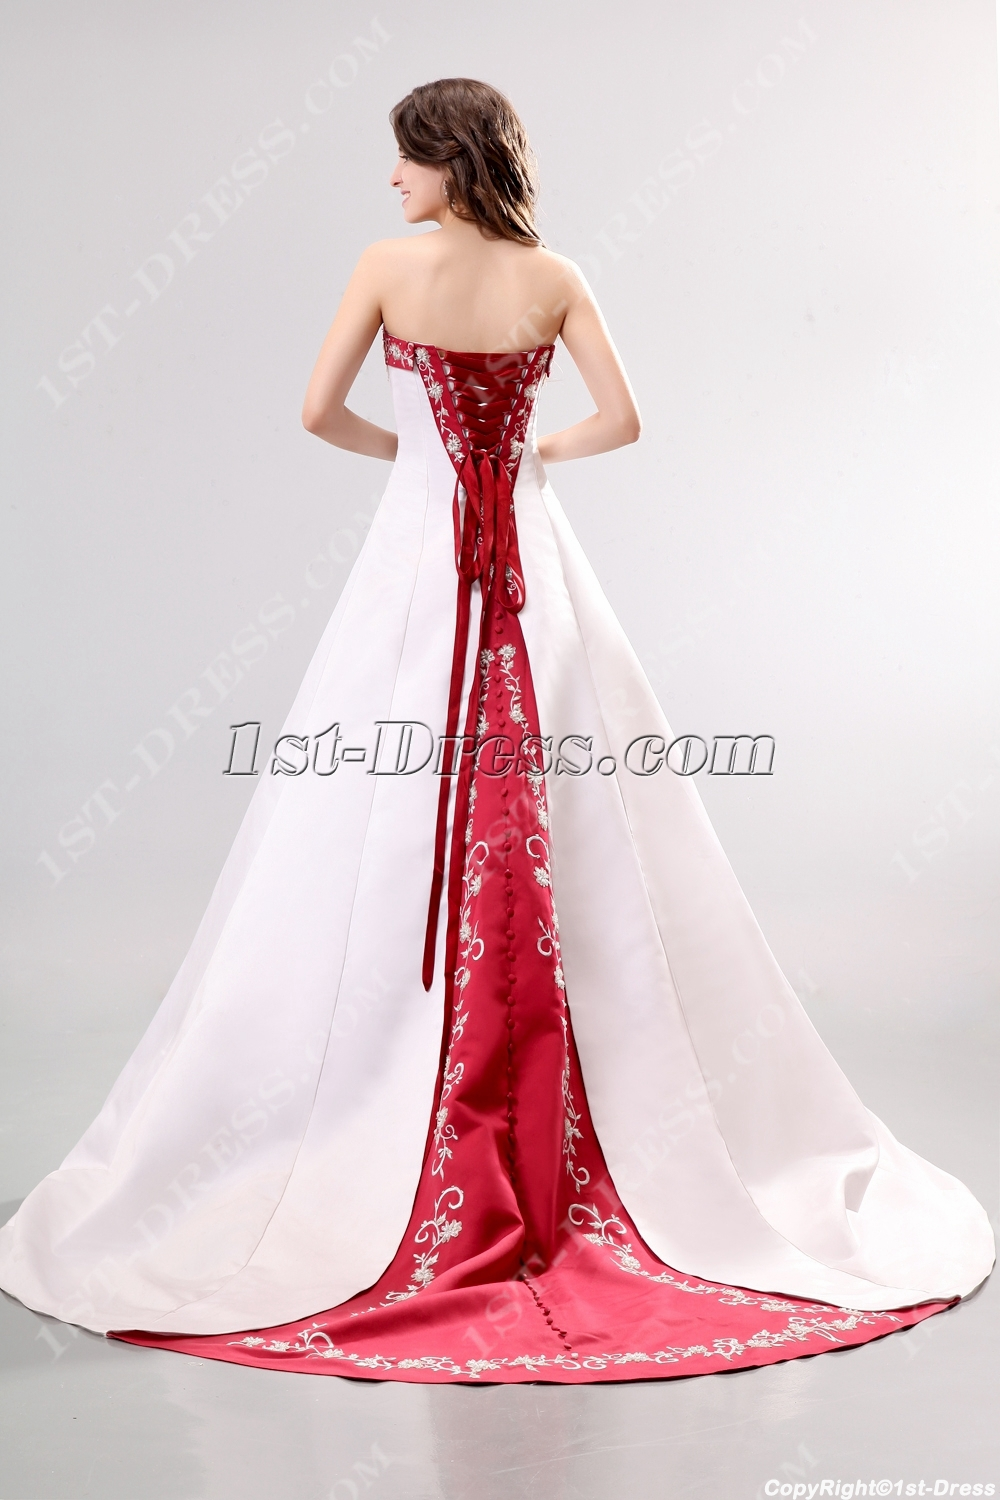 images/201311/big/Unique-Red-2013-Wedding-Dress-with-Embroidery-3507-b-1-1384273468.jpg